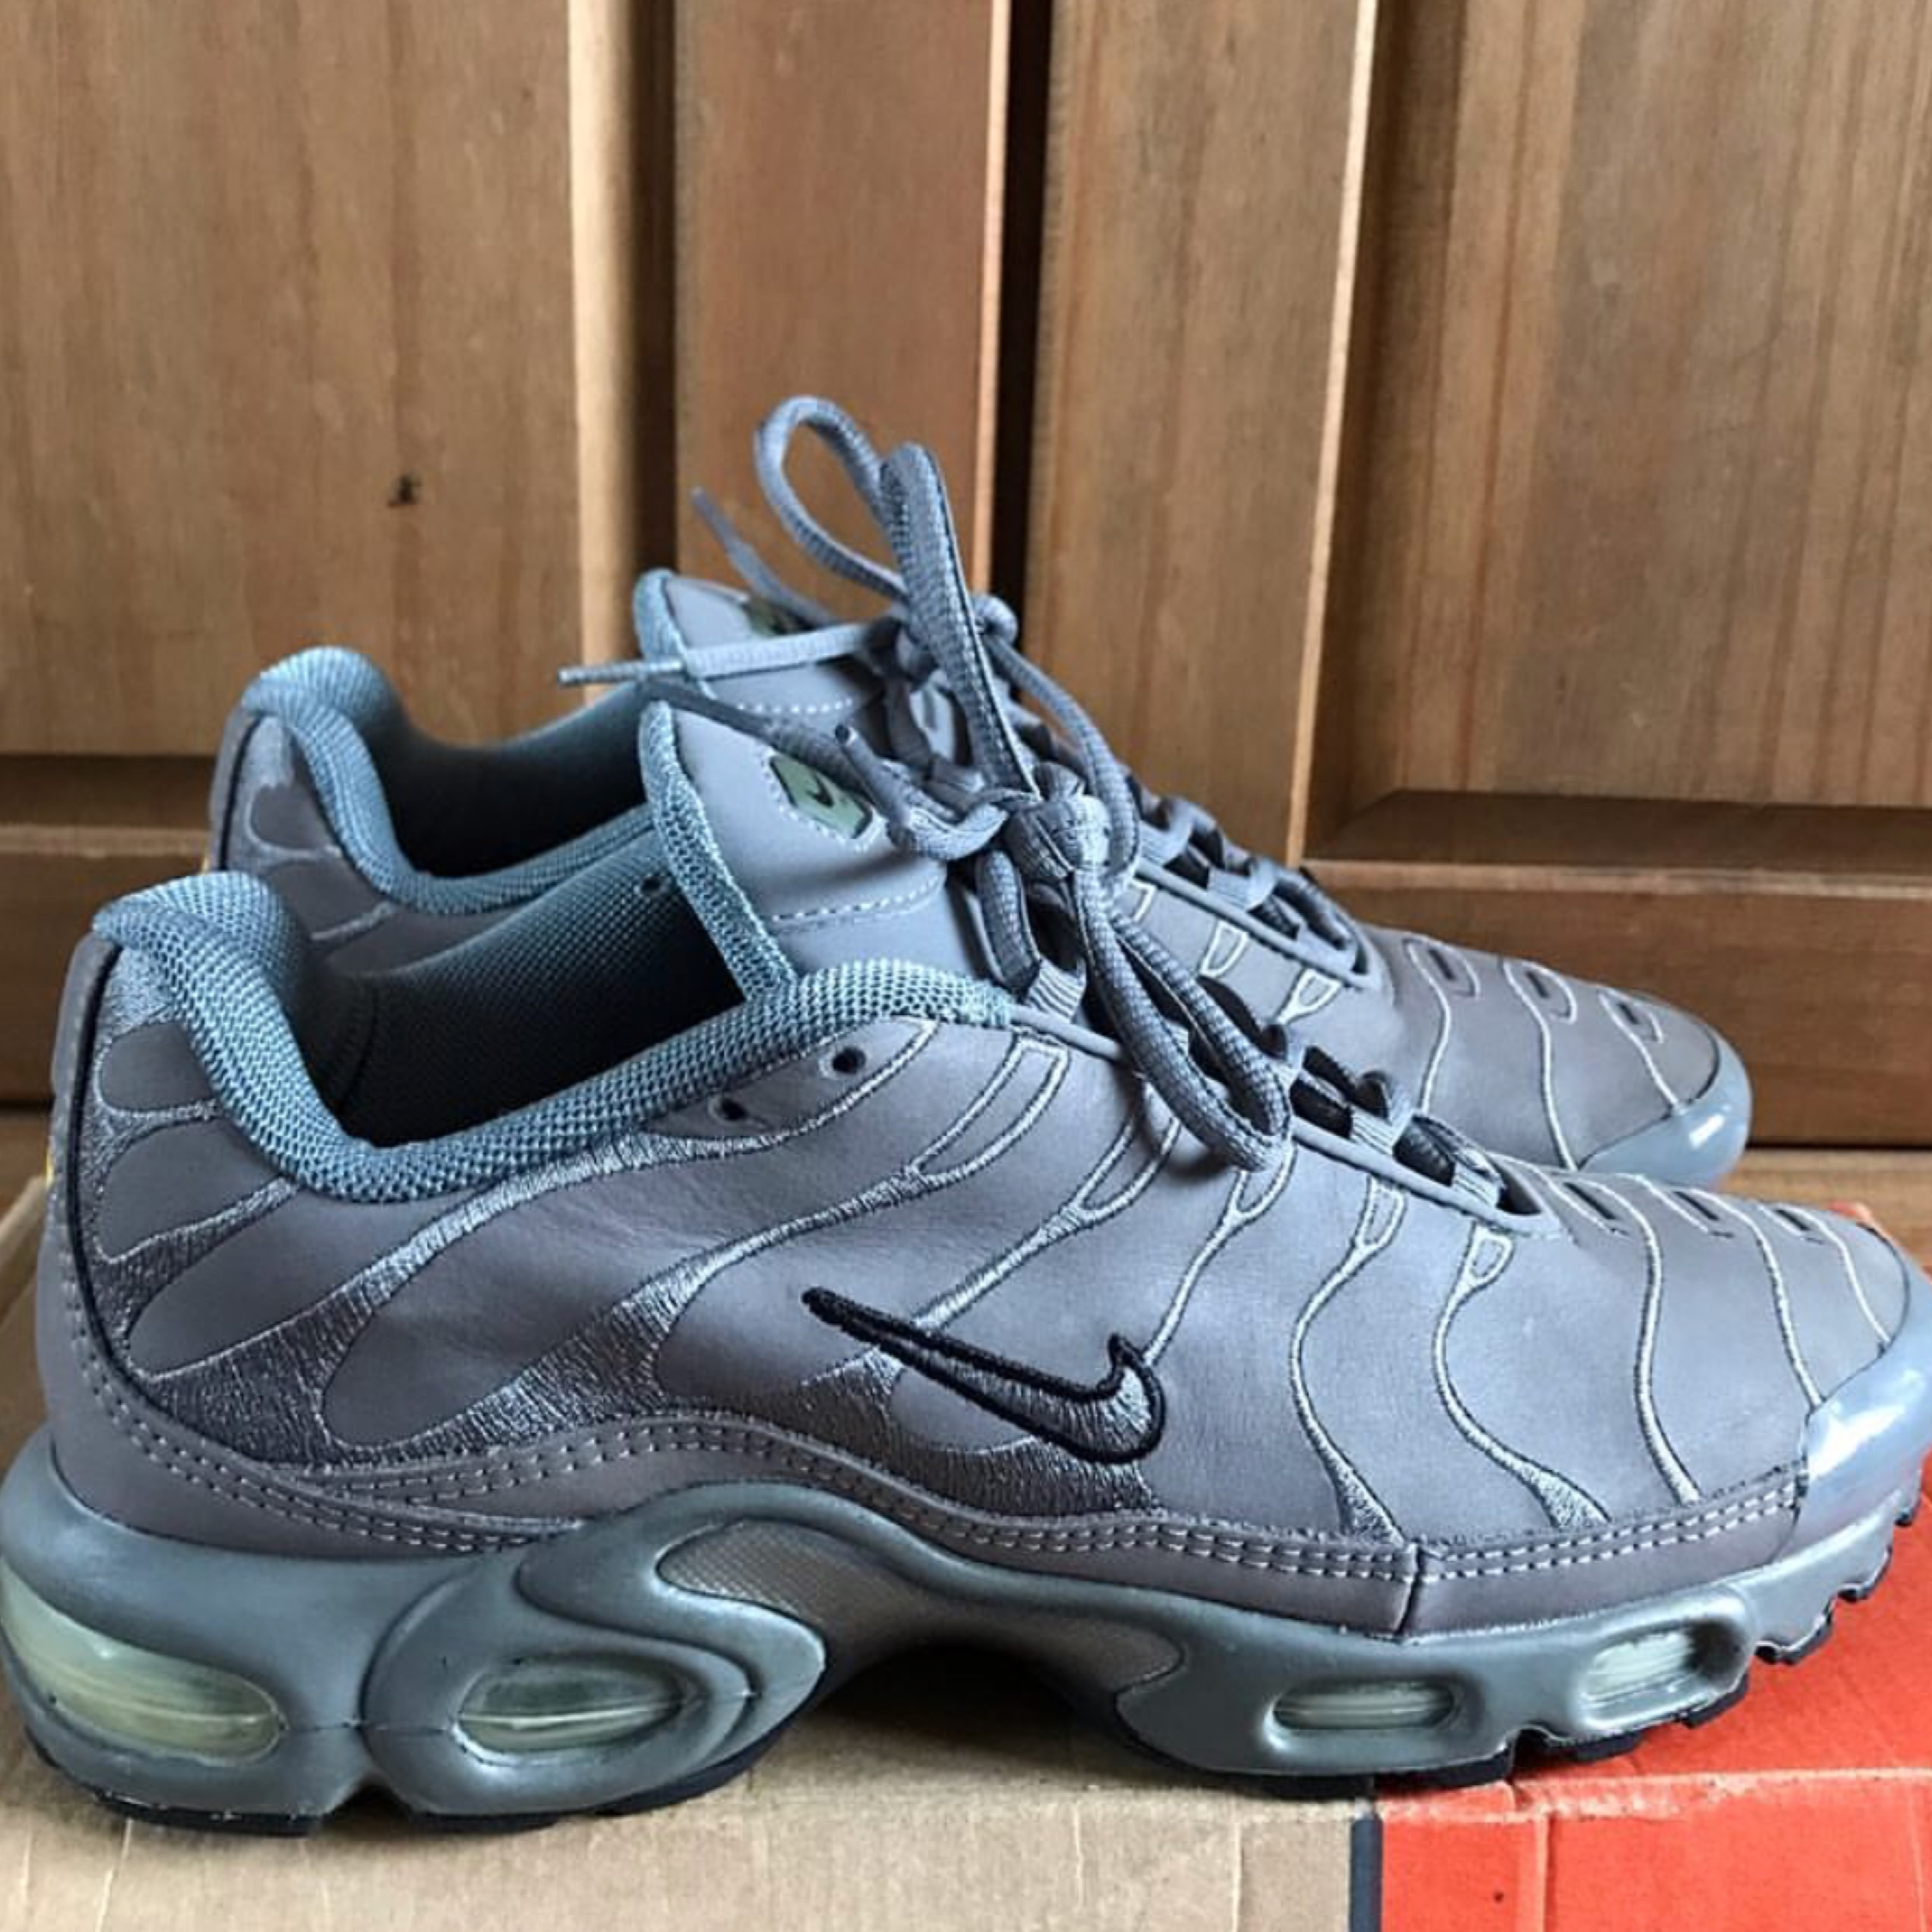 hot product clearance sale 100% quality Nike Air Max Plus Tn Grey Suede New From 2000